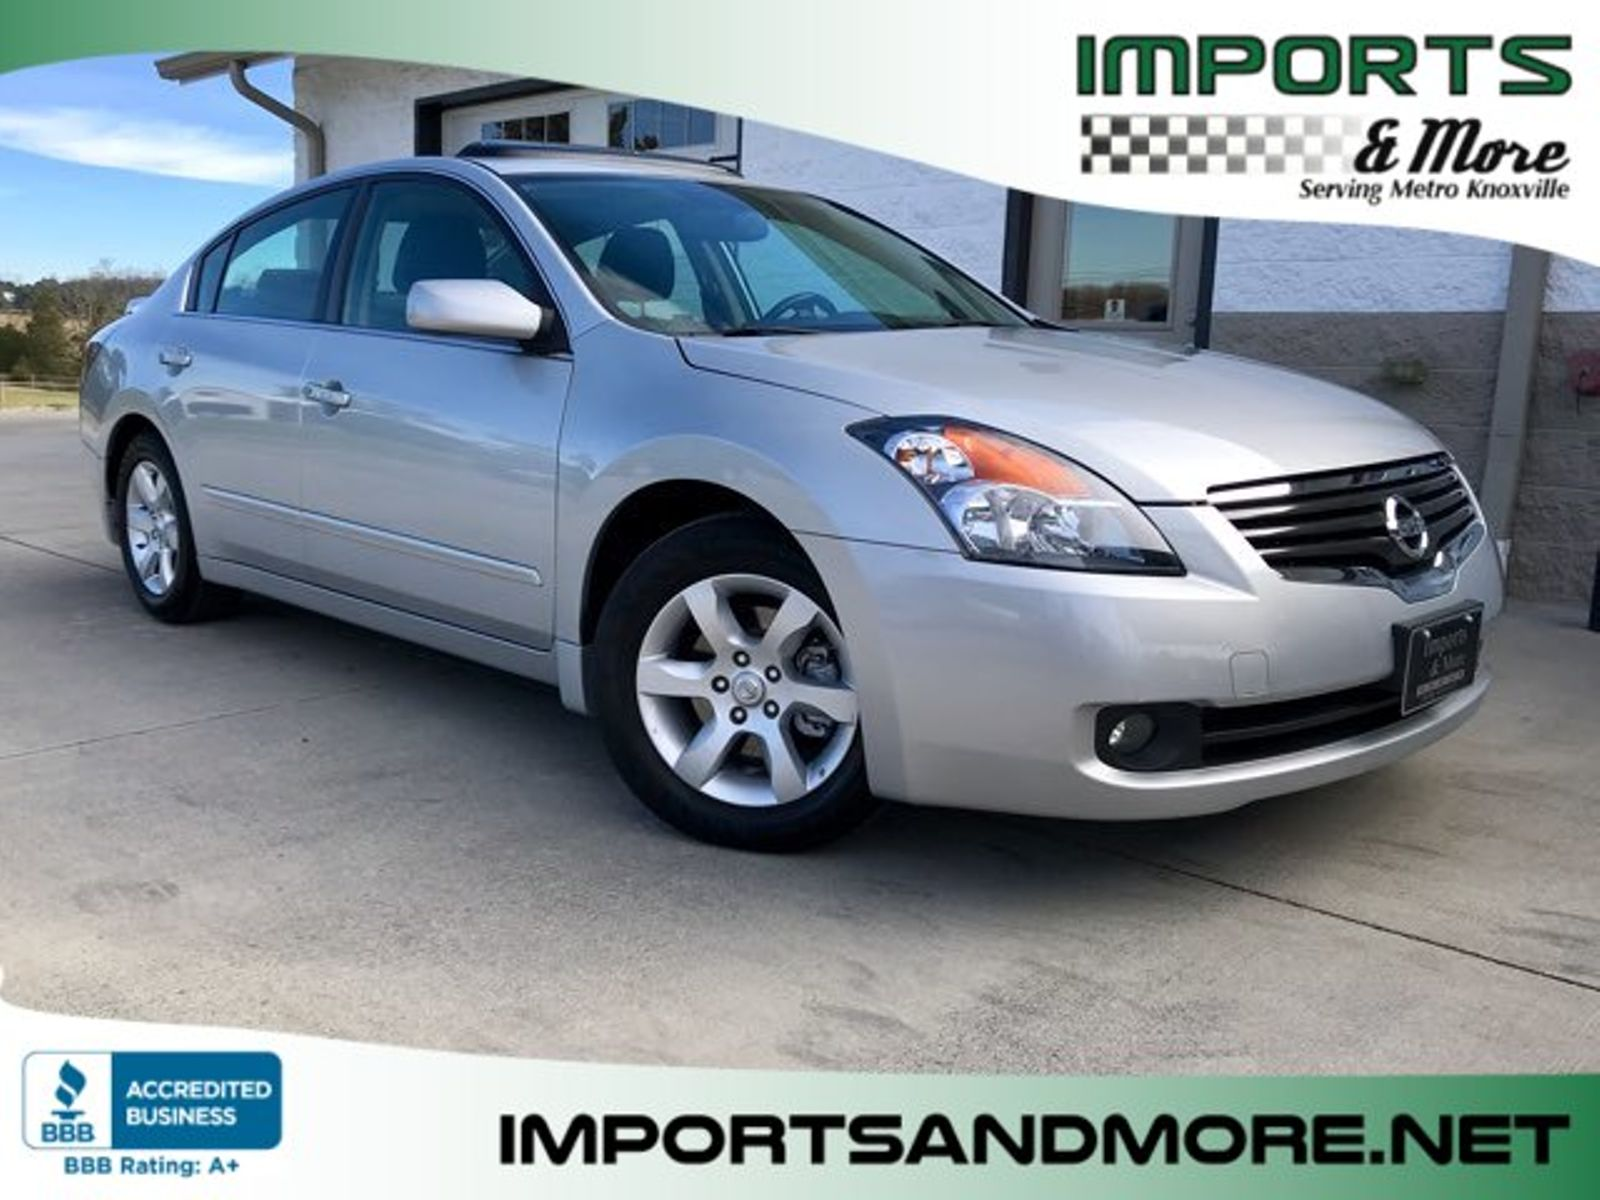 2009 Nissan Altima SL Imports and More Inc in Lenoir City, TN ...